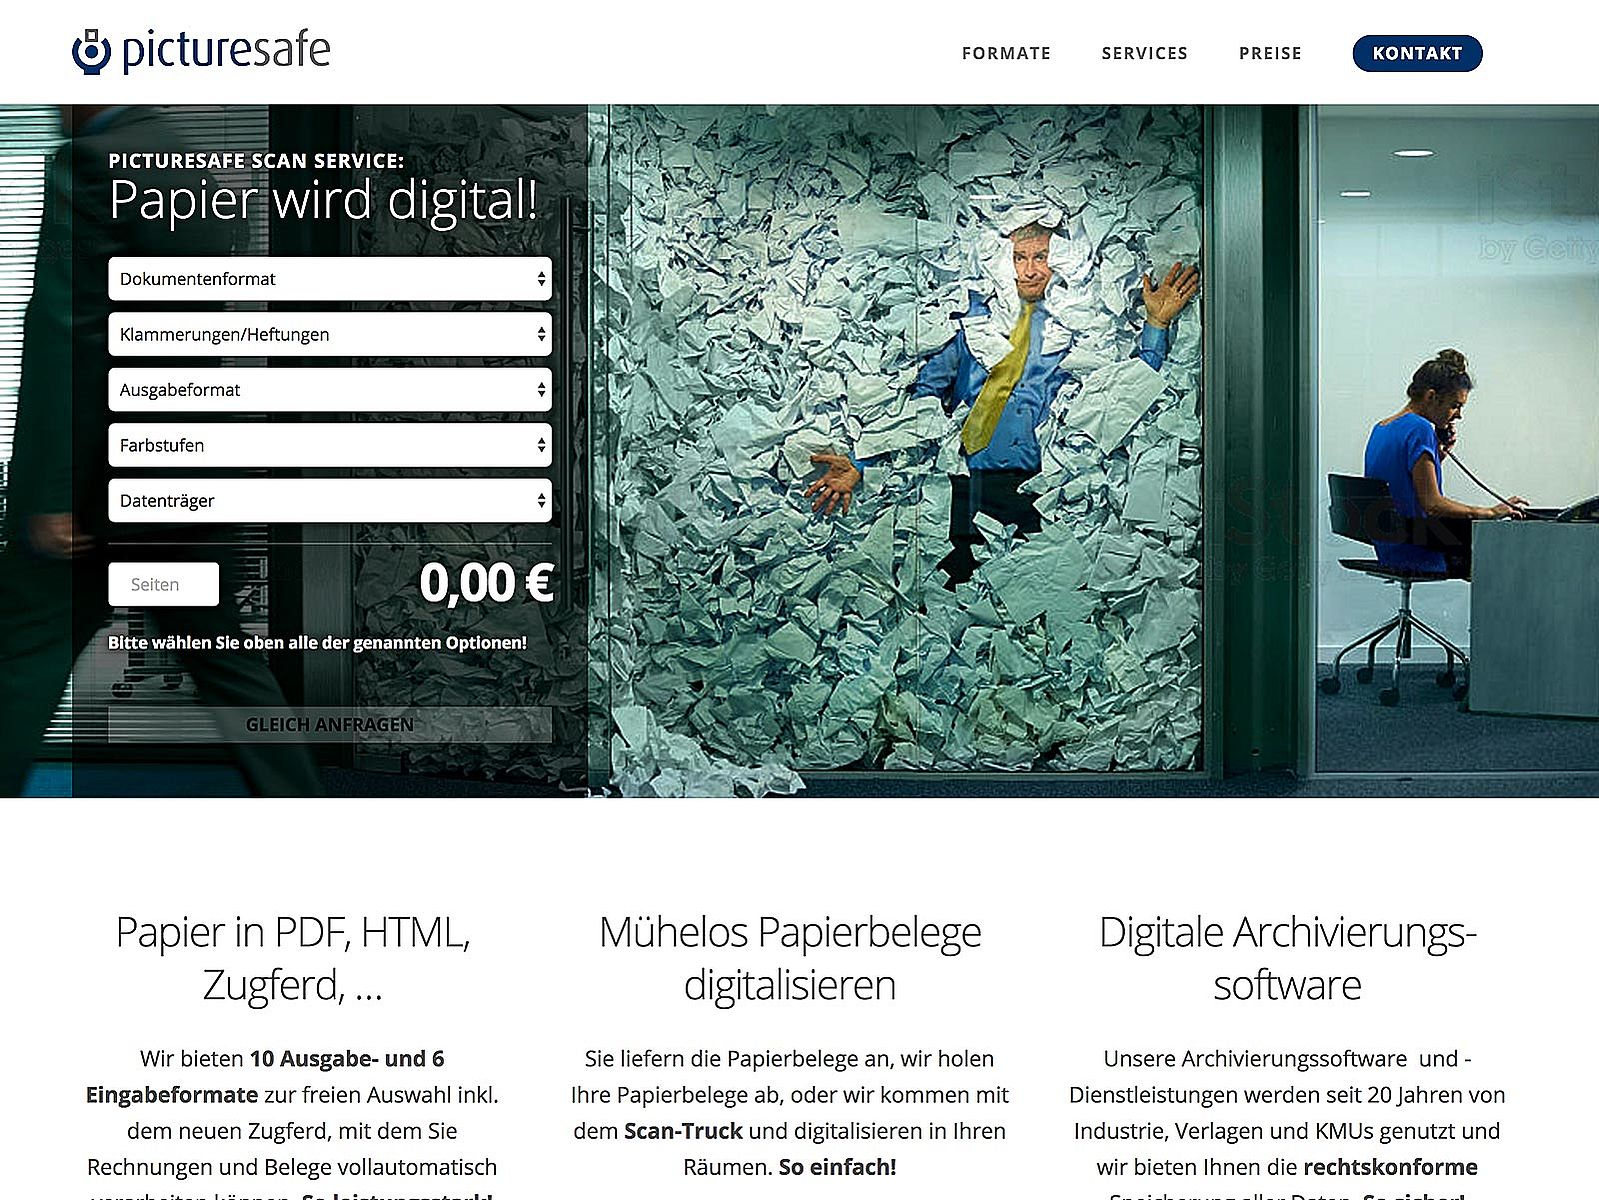 Landingpage und Adwords-Kampagne für high-end-digitalisierung.de der picturesafe